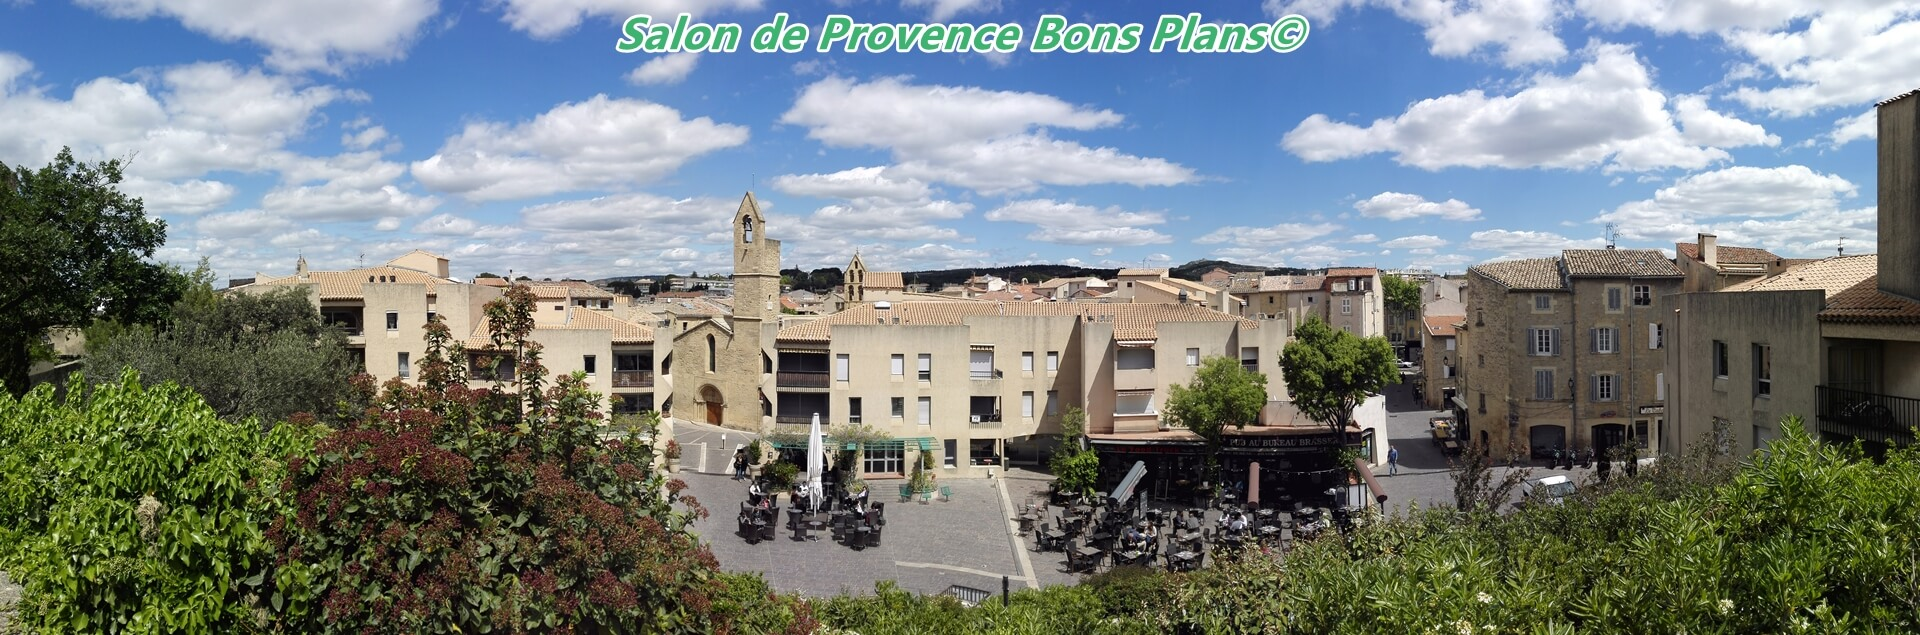 Agenda des sorties et v nements salon de provence for Bibliotheque salon de provence